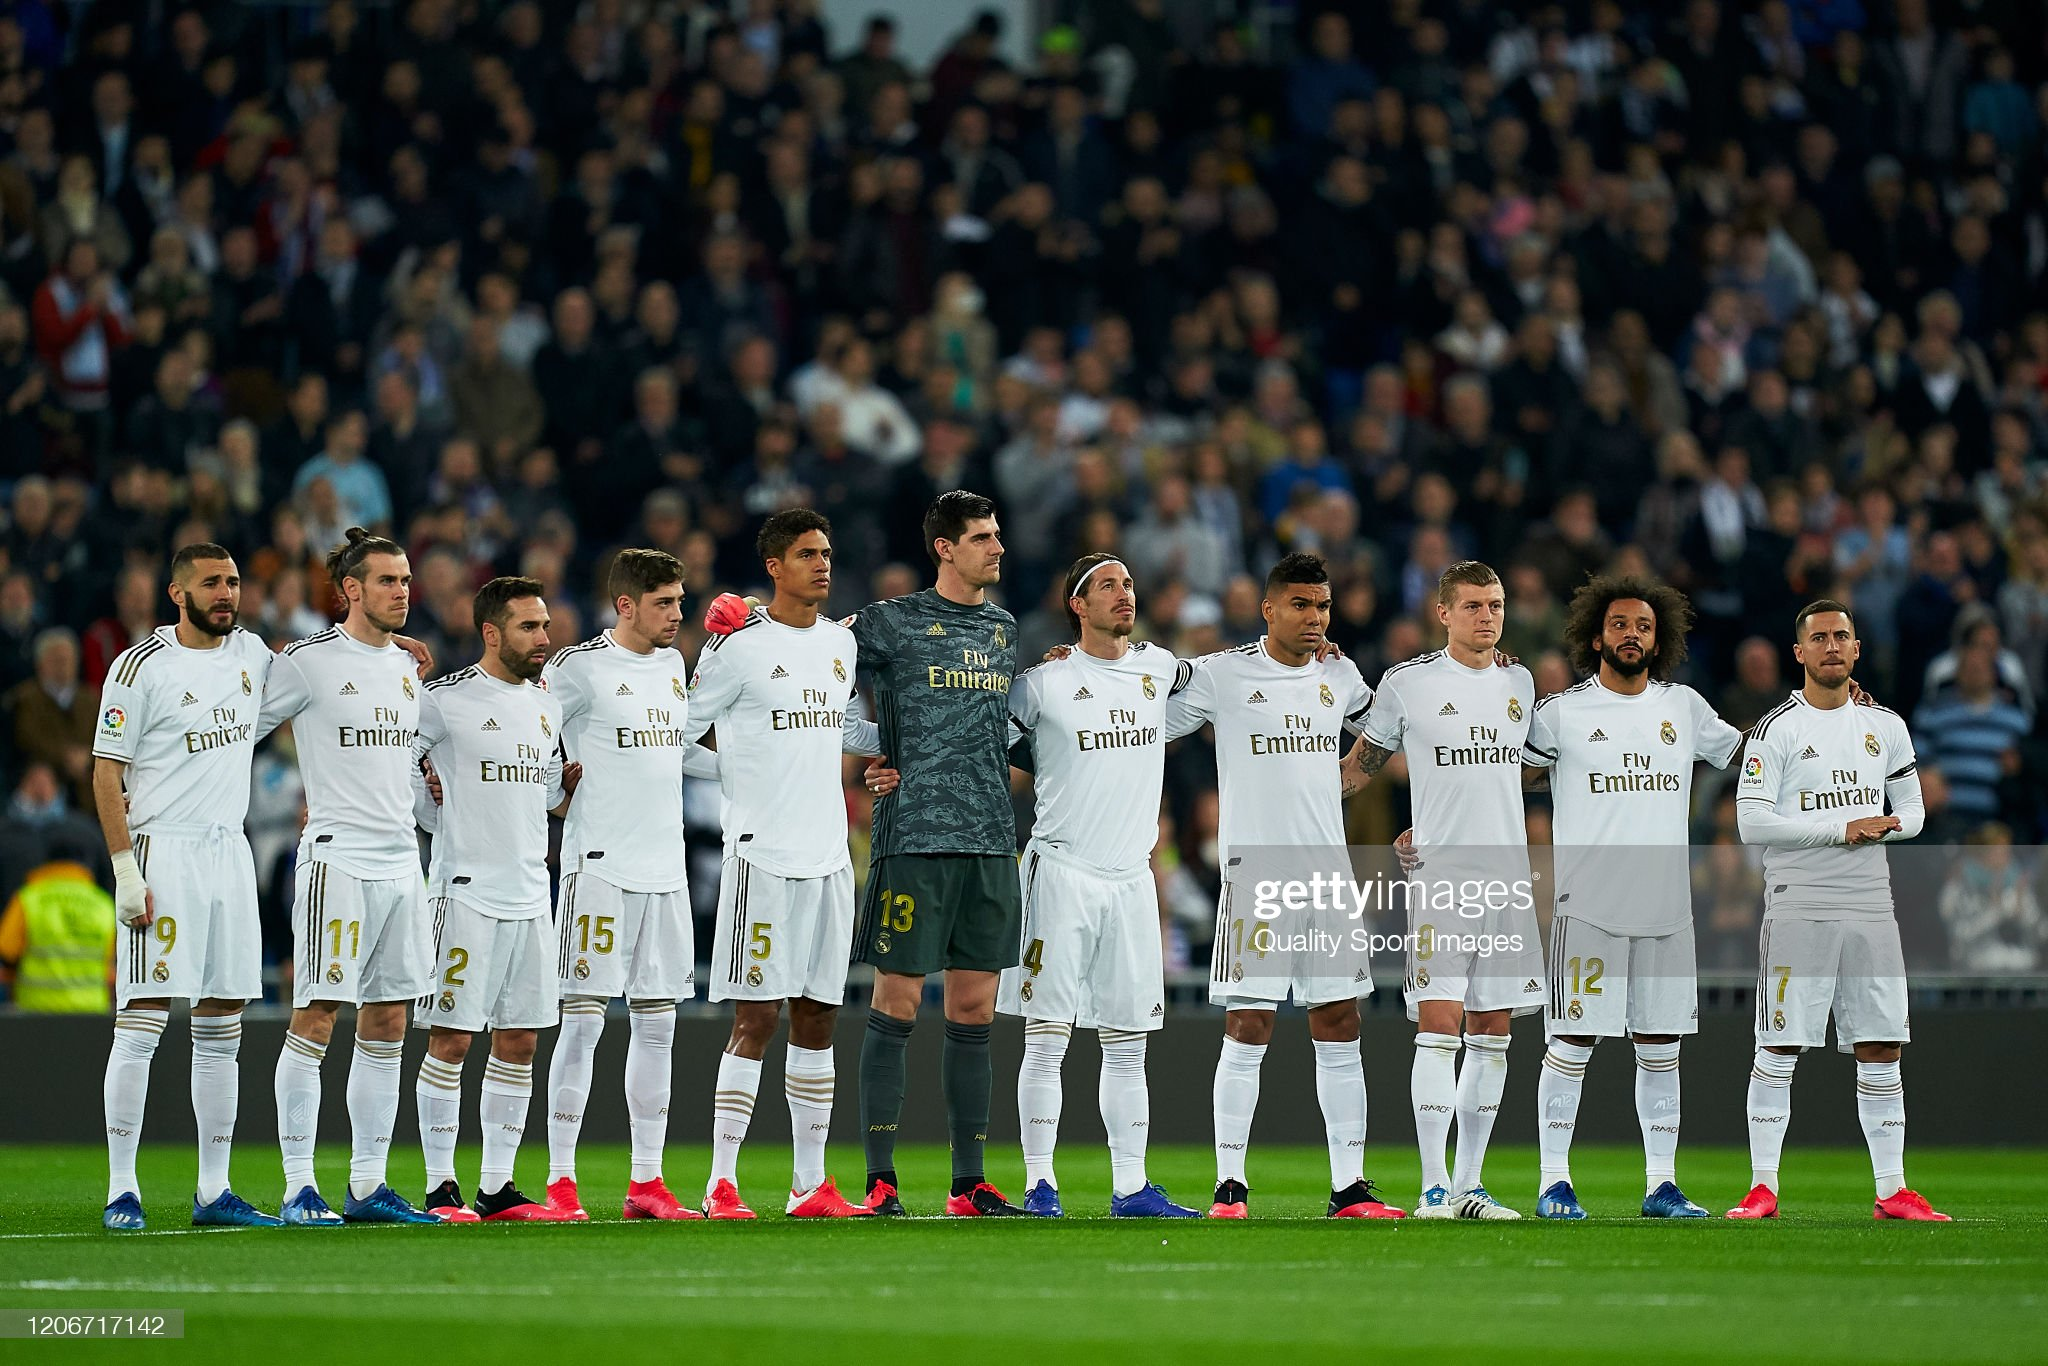 Hilo del Real Madrid - Página 3 Players-of-real-madrid-cf-poses-for-a-minute-of-silence-prior-to-the-picture-id1206717142?s=2048x2048